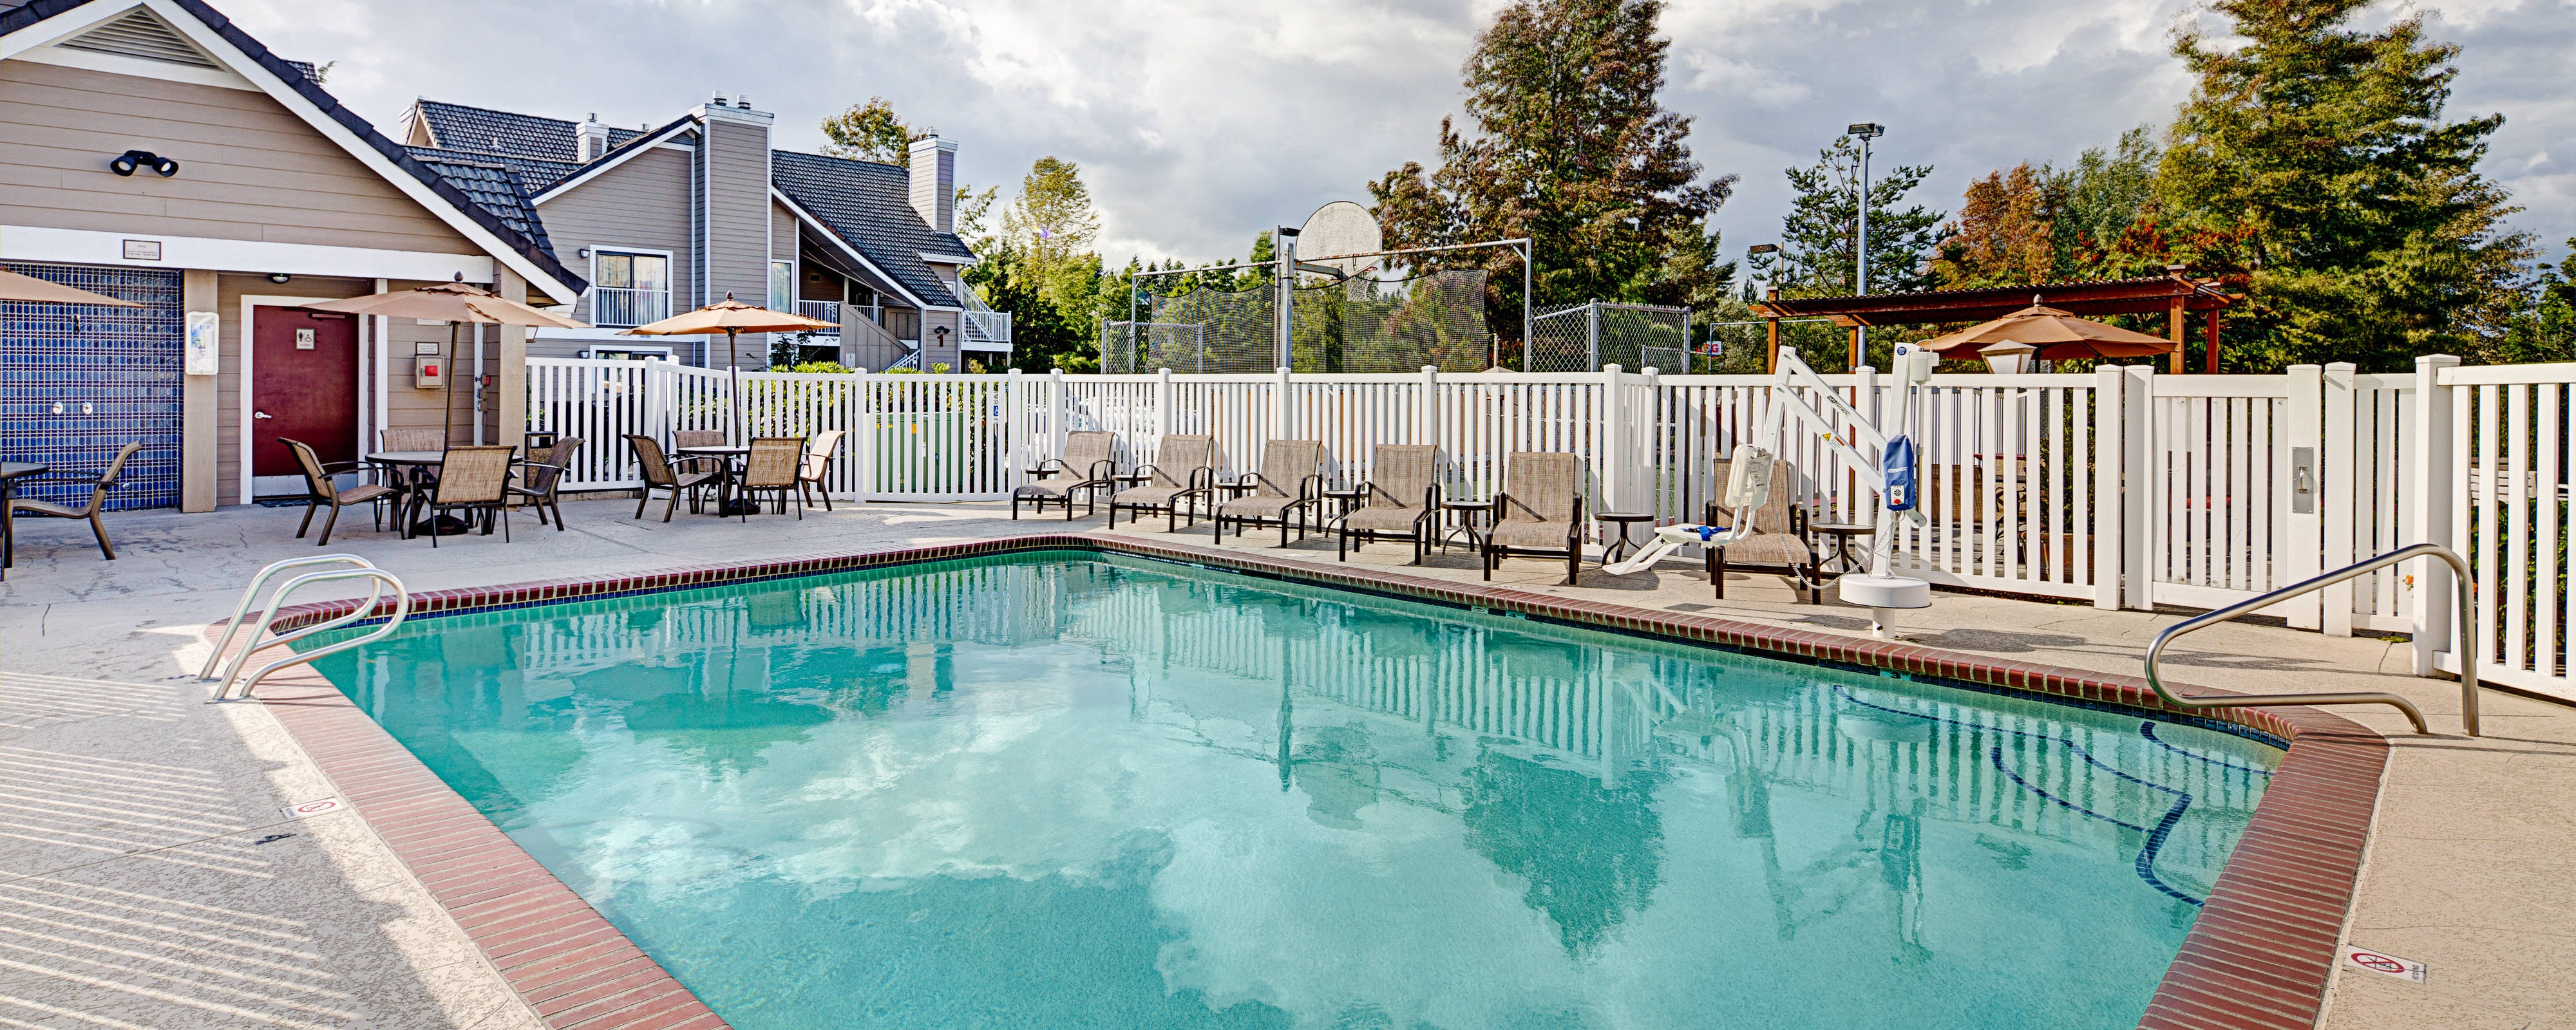 Residence Inn Seattle North/Lynnwood Everett - Outdoor Pool